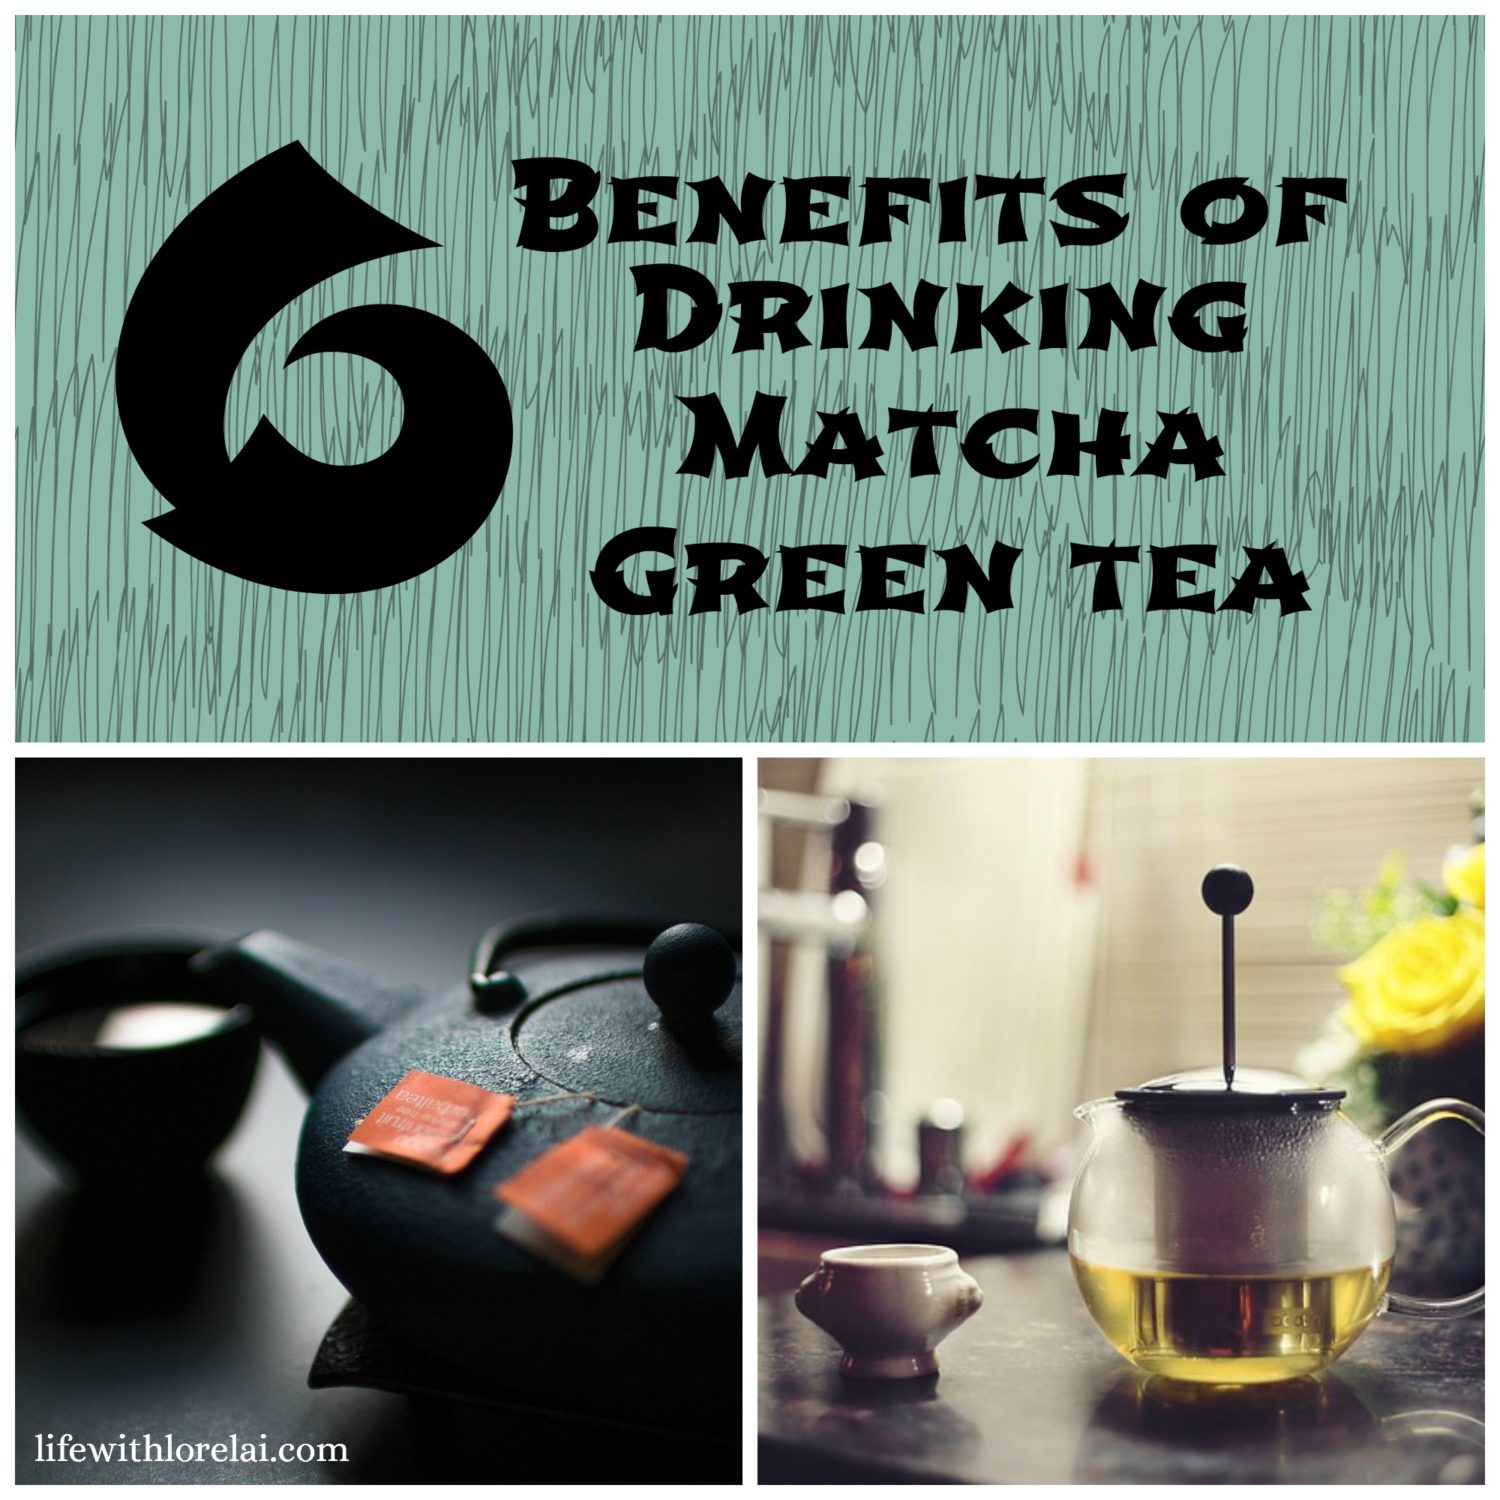 6-Benefits-Drinking-Matcha-Green-Tea-Life With Lorelai